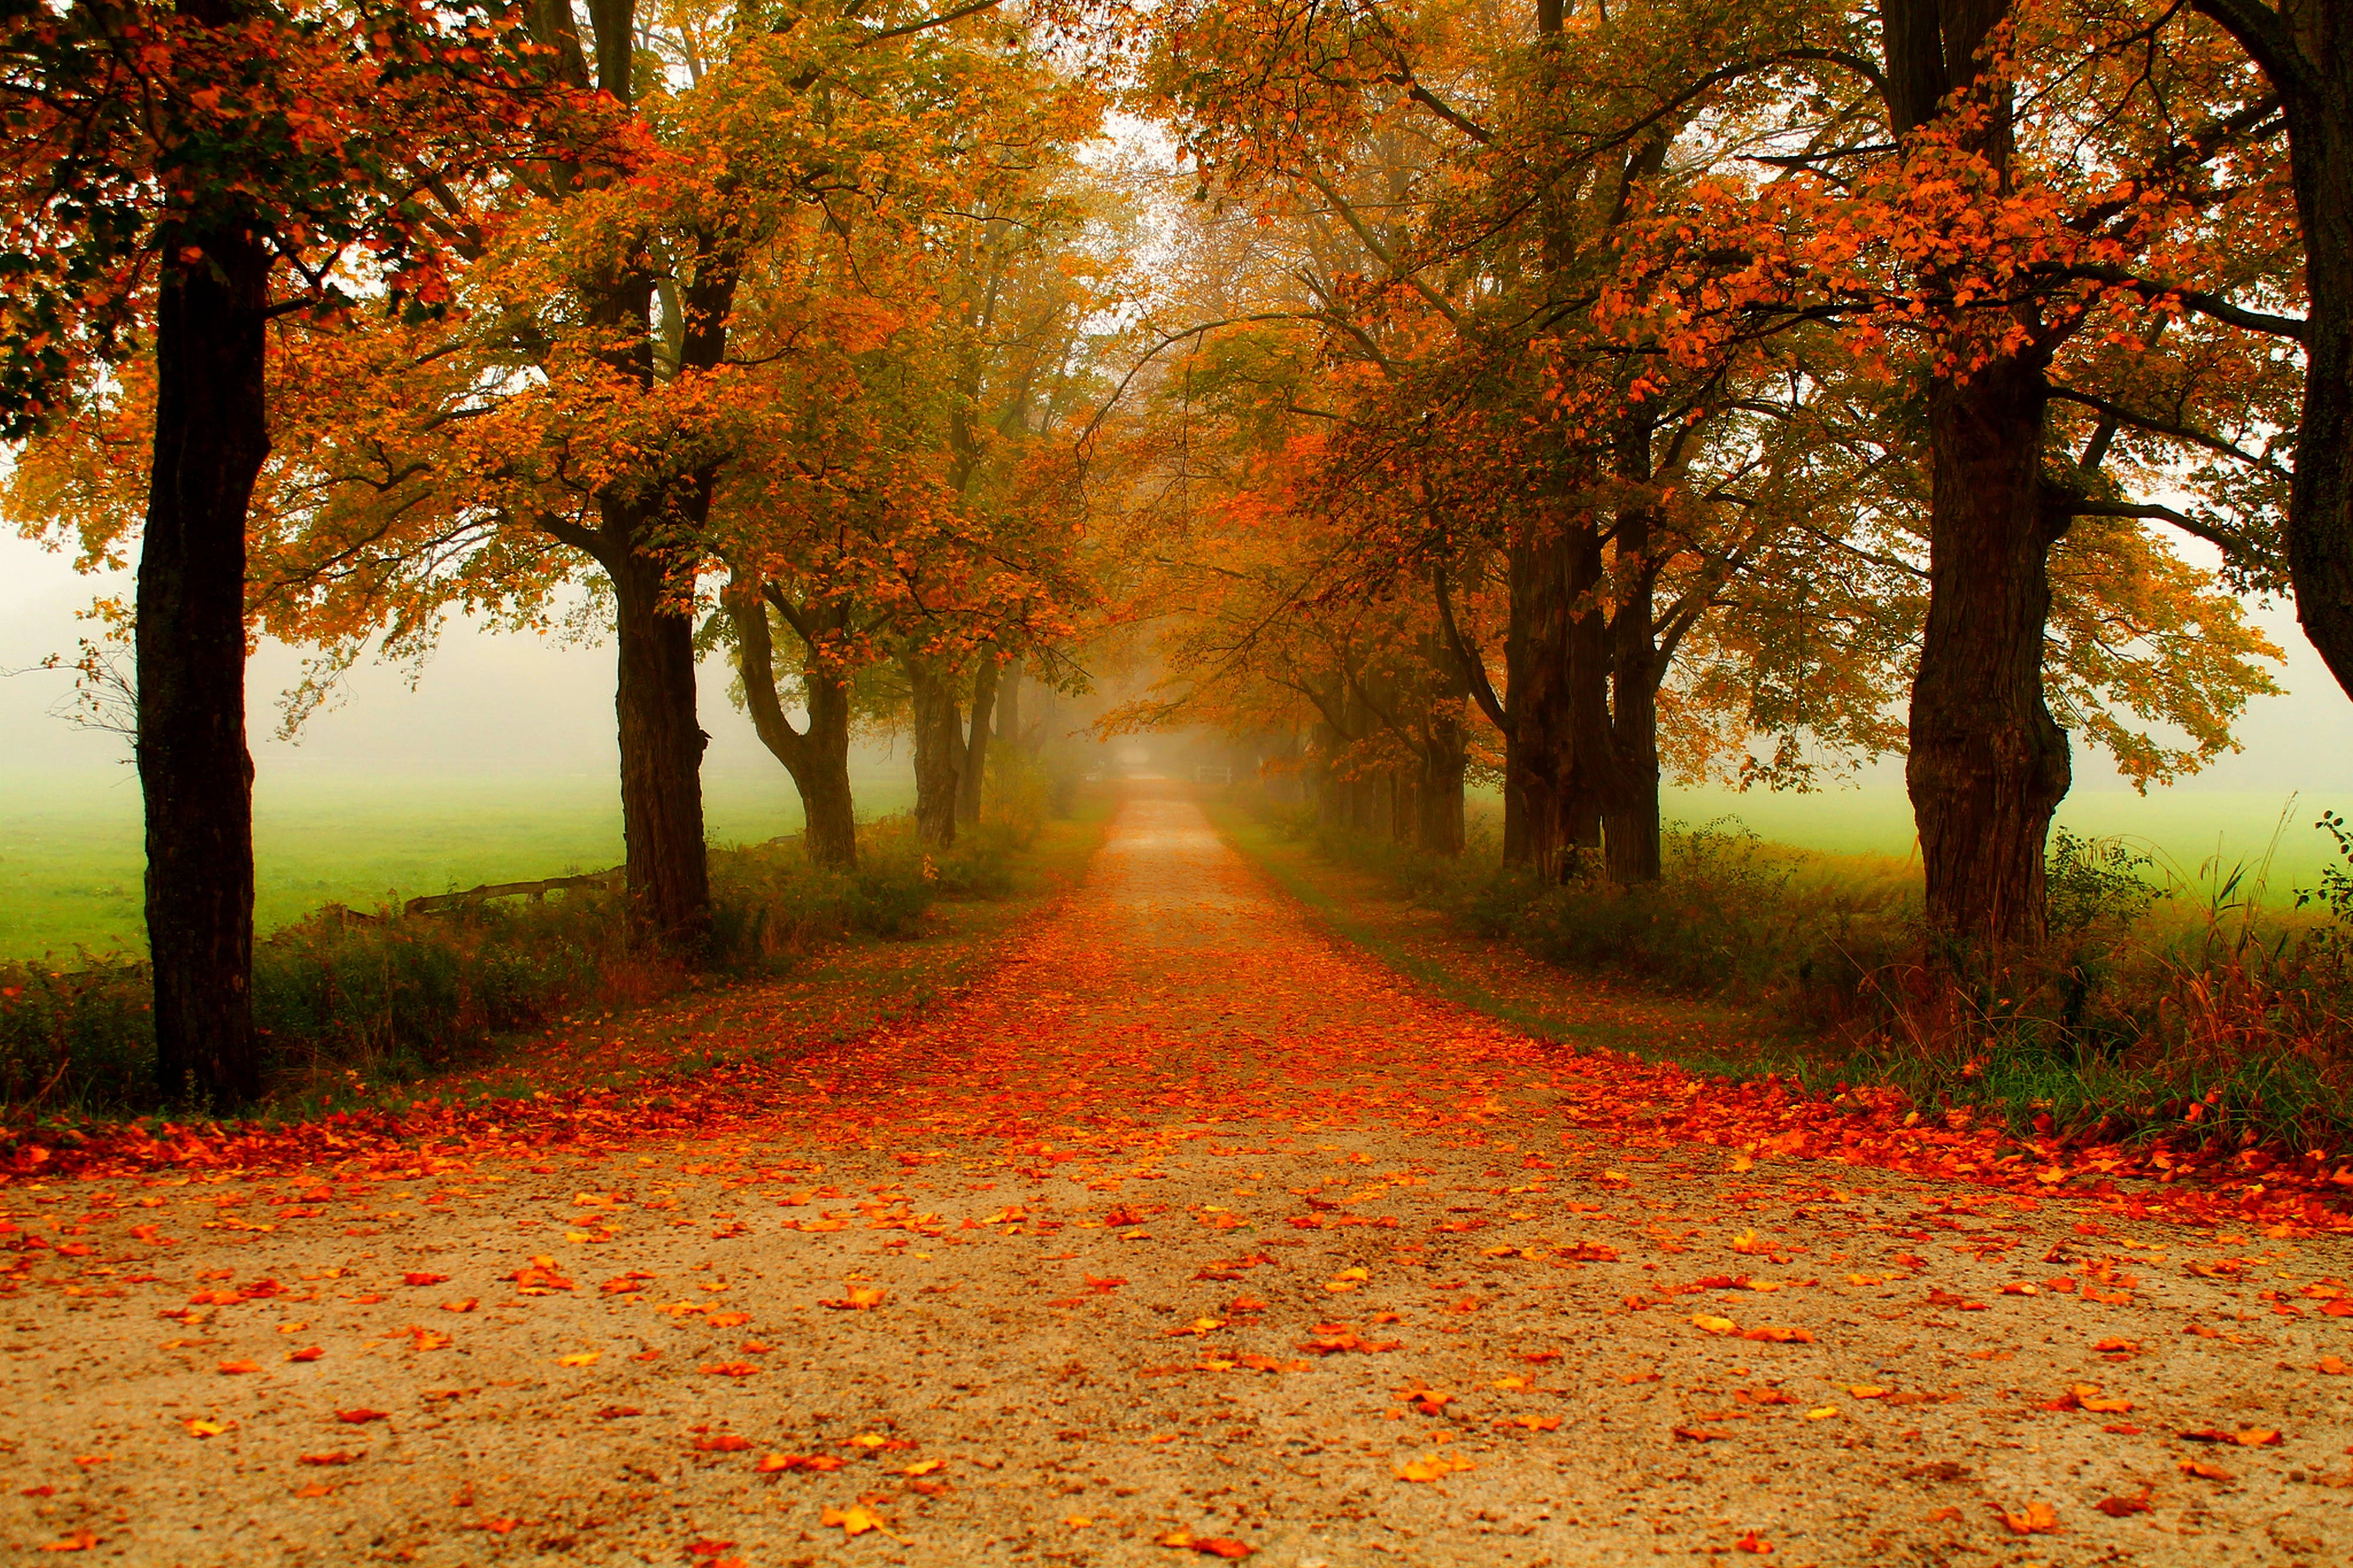 Autumn_Parks_Trees_456178